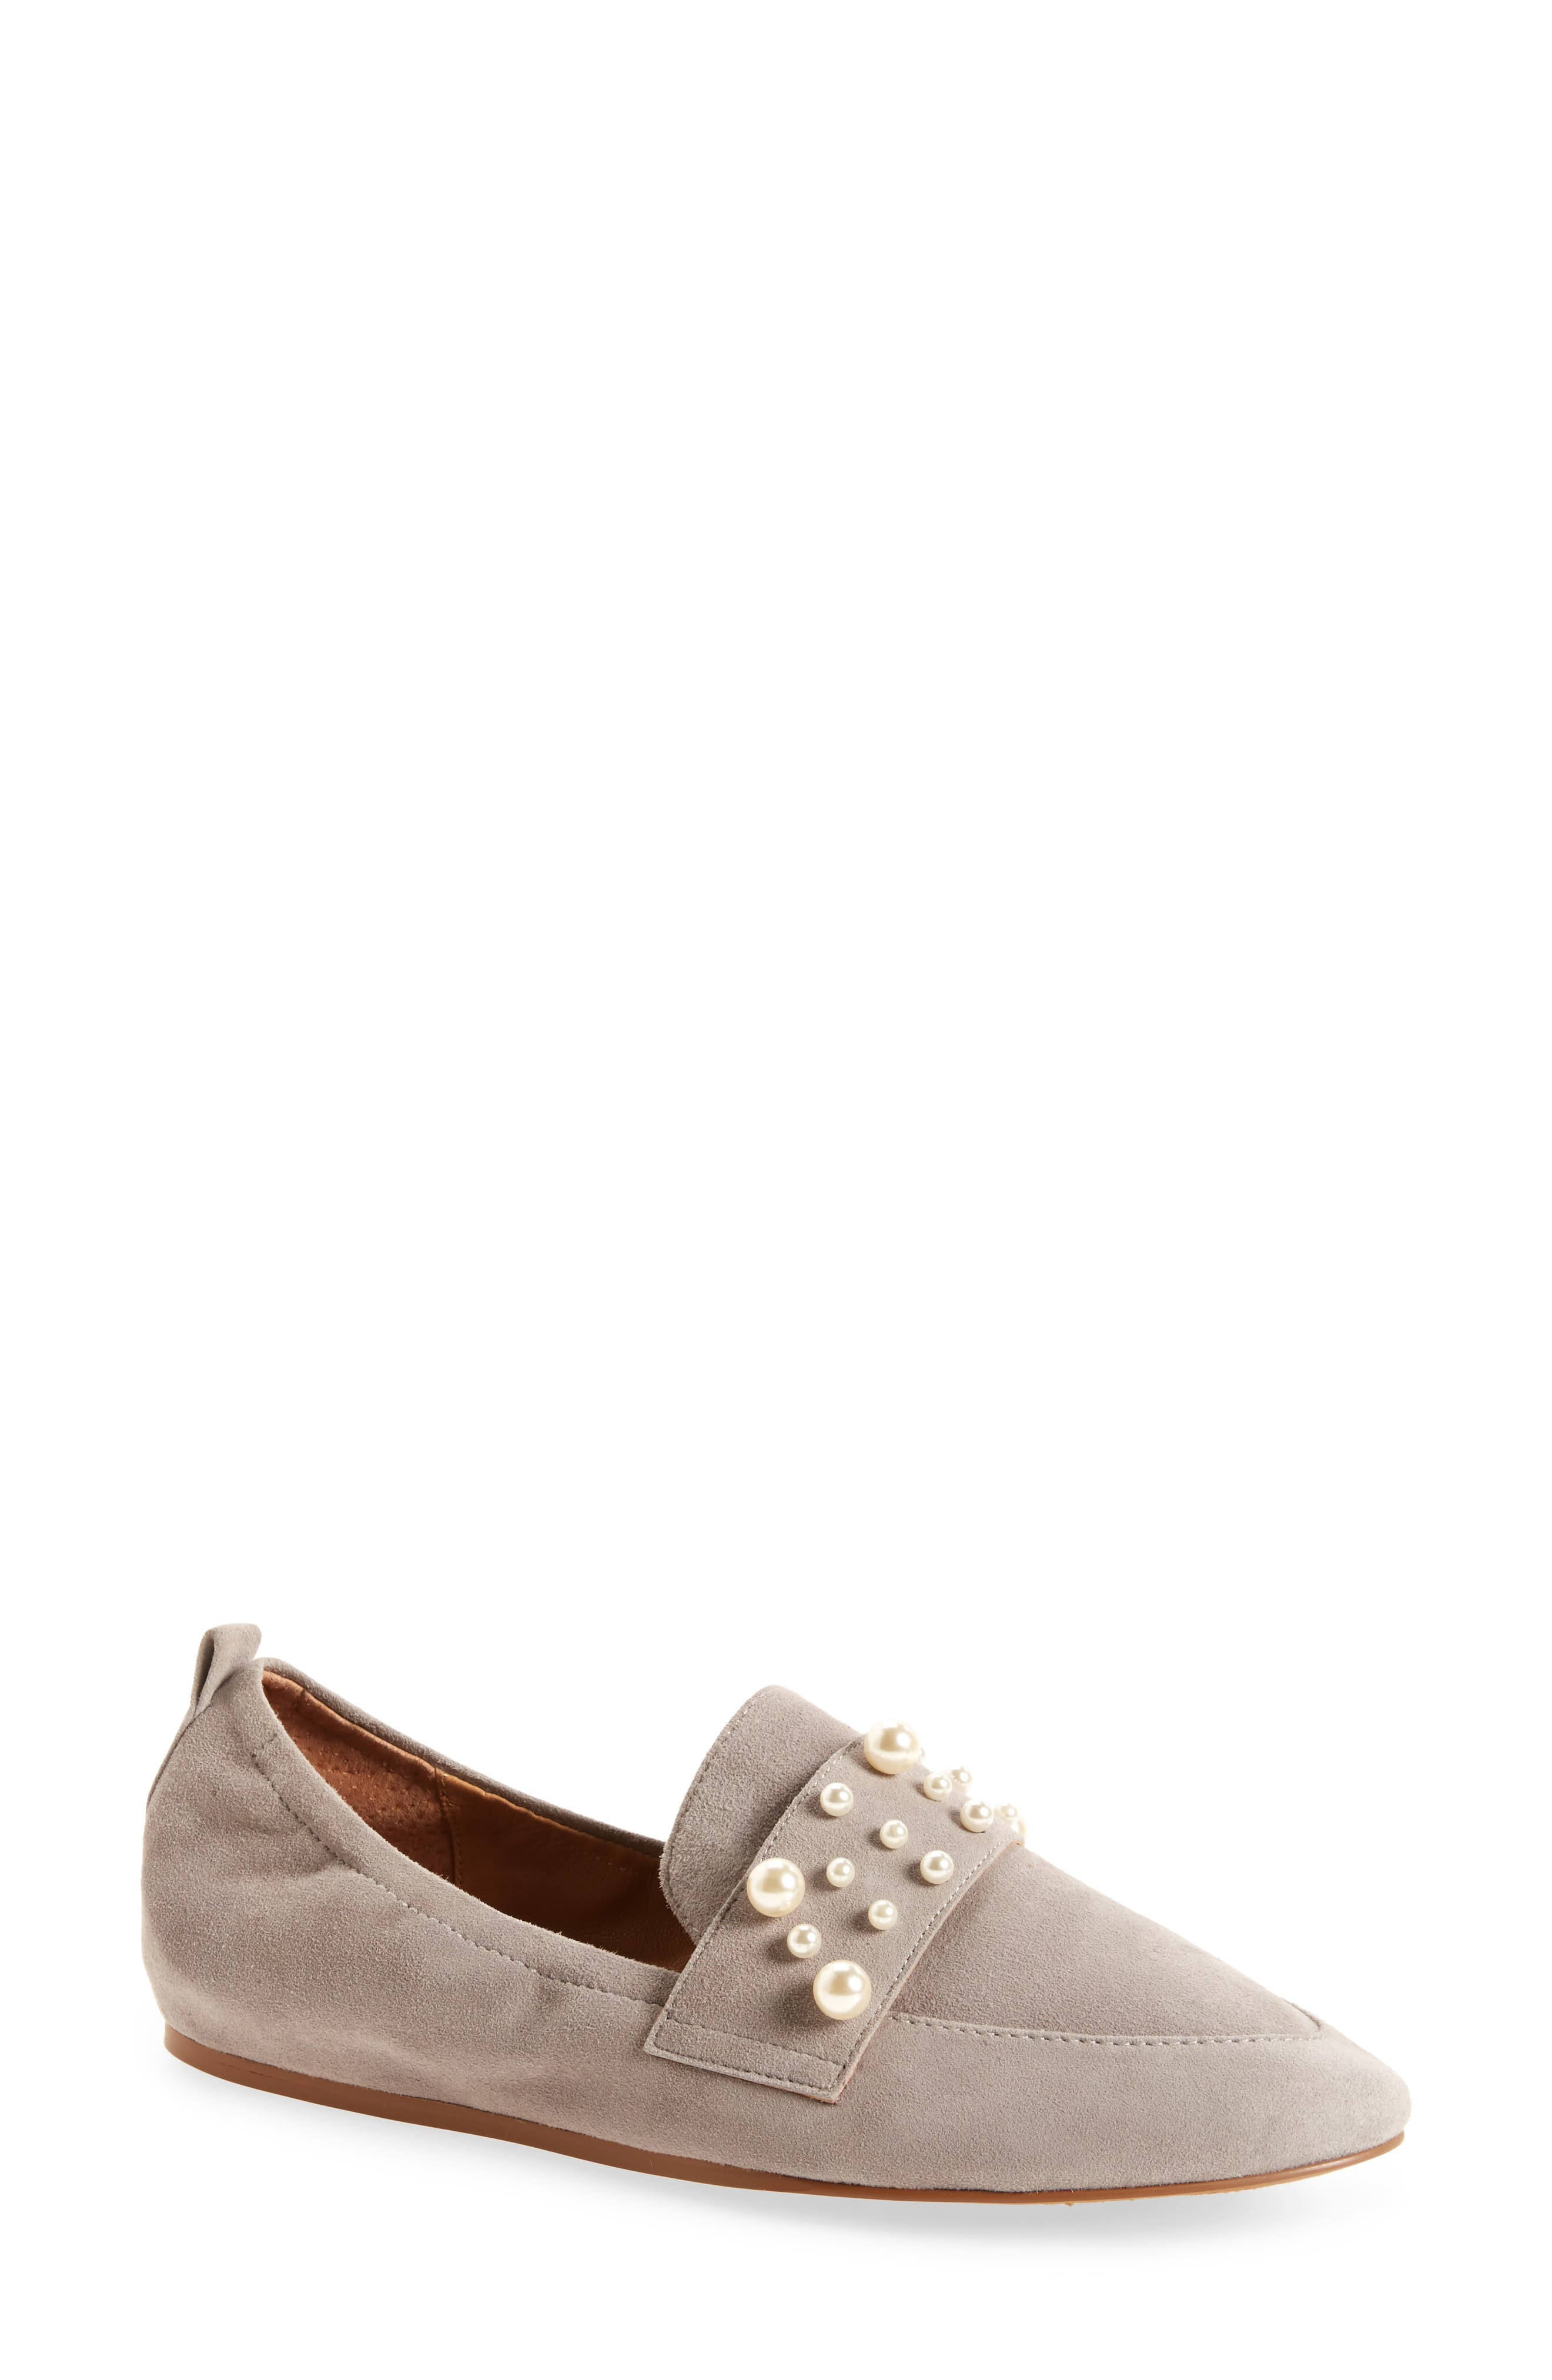 Milly Loafer,                             Main thumbnail 2, color,